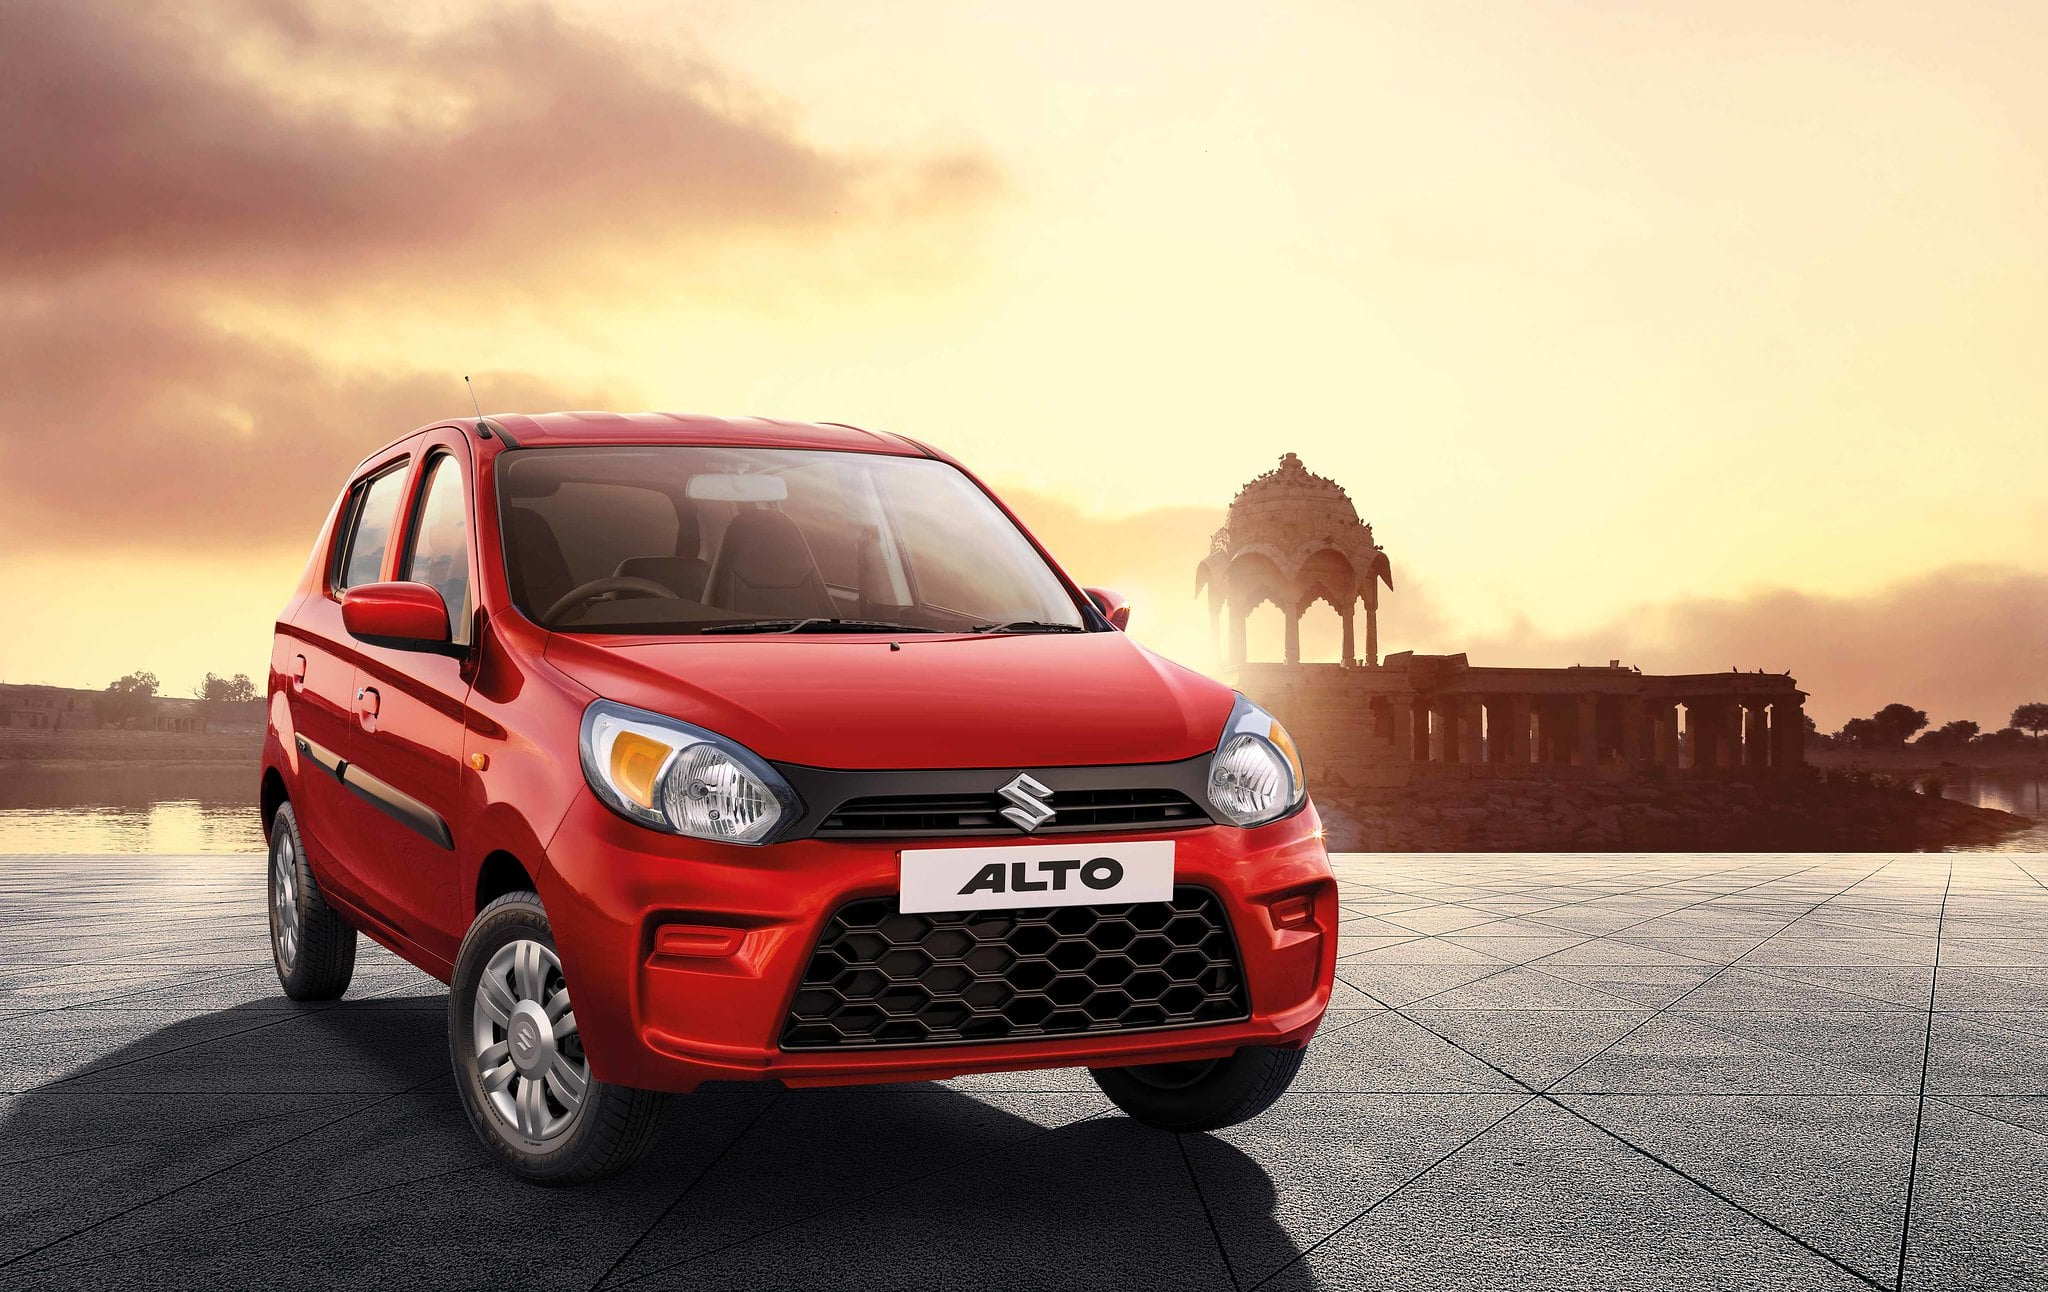 Maruti Suzuki Alto New Accessories Online Configurator Launched